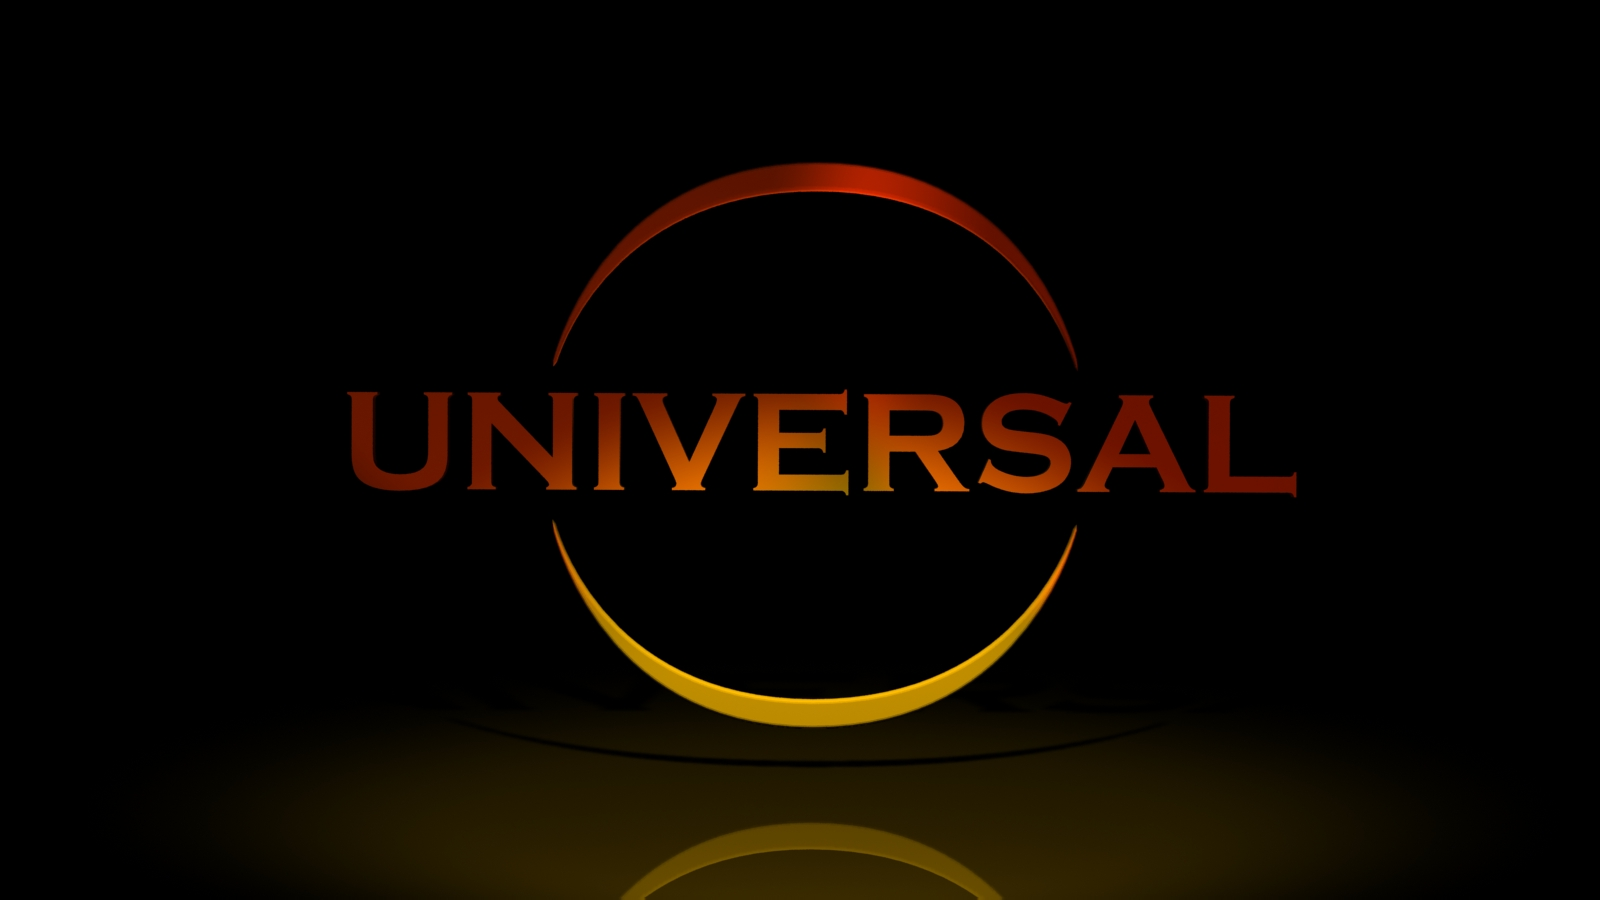 Universal Wallpaper Page 8 Images 1600x900